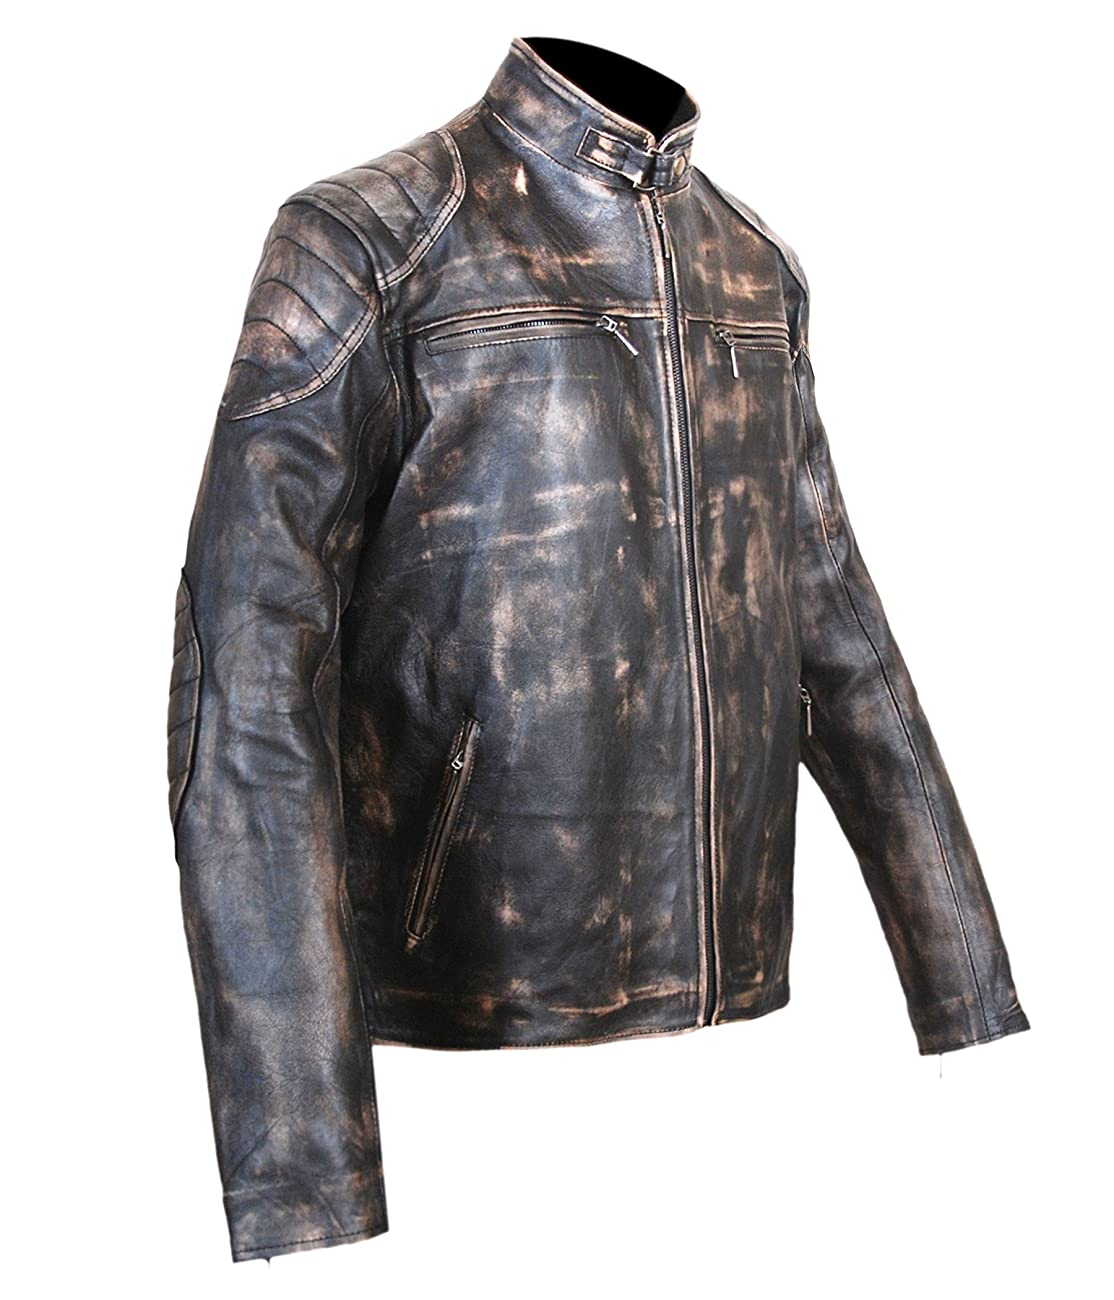 Antique Black Men's Vintage Distressed Retro Motorcycle Biker Leather jacket - TOP SELLER 2